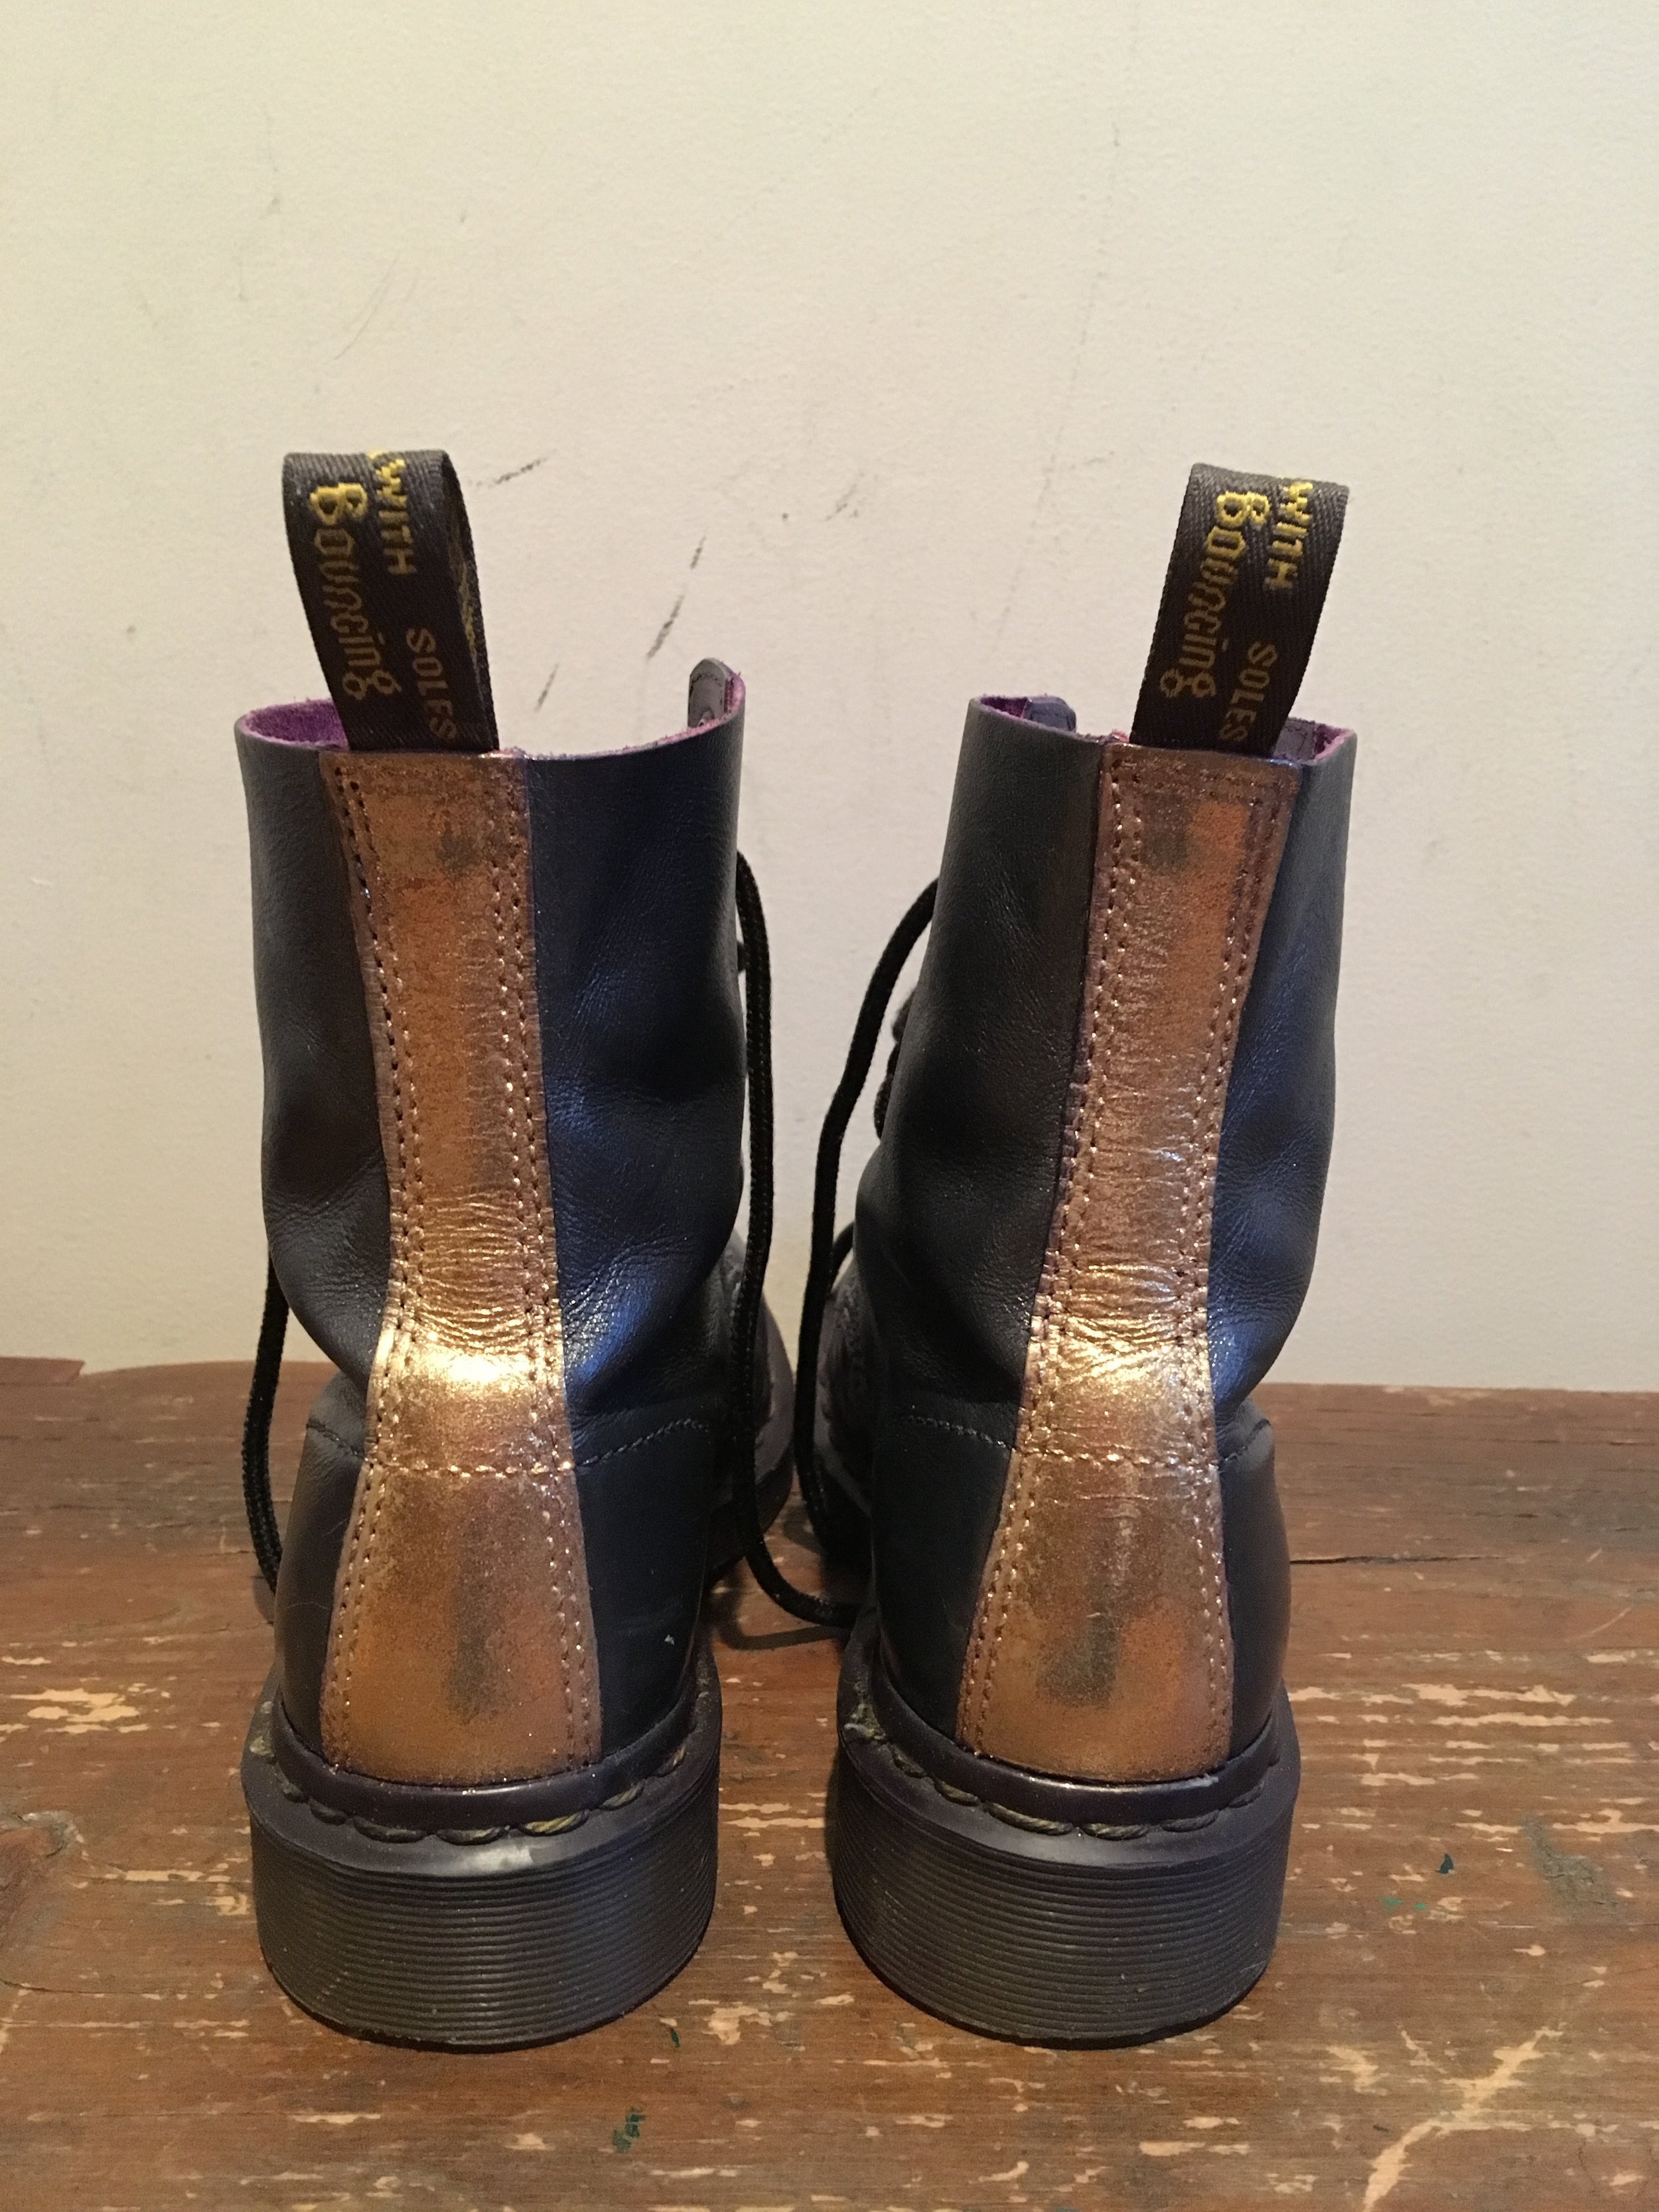 Dr. Martens refinished with a dark pewter grey and a sparkling gold heel..